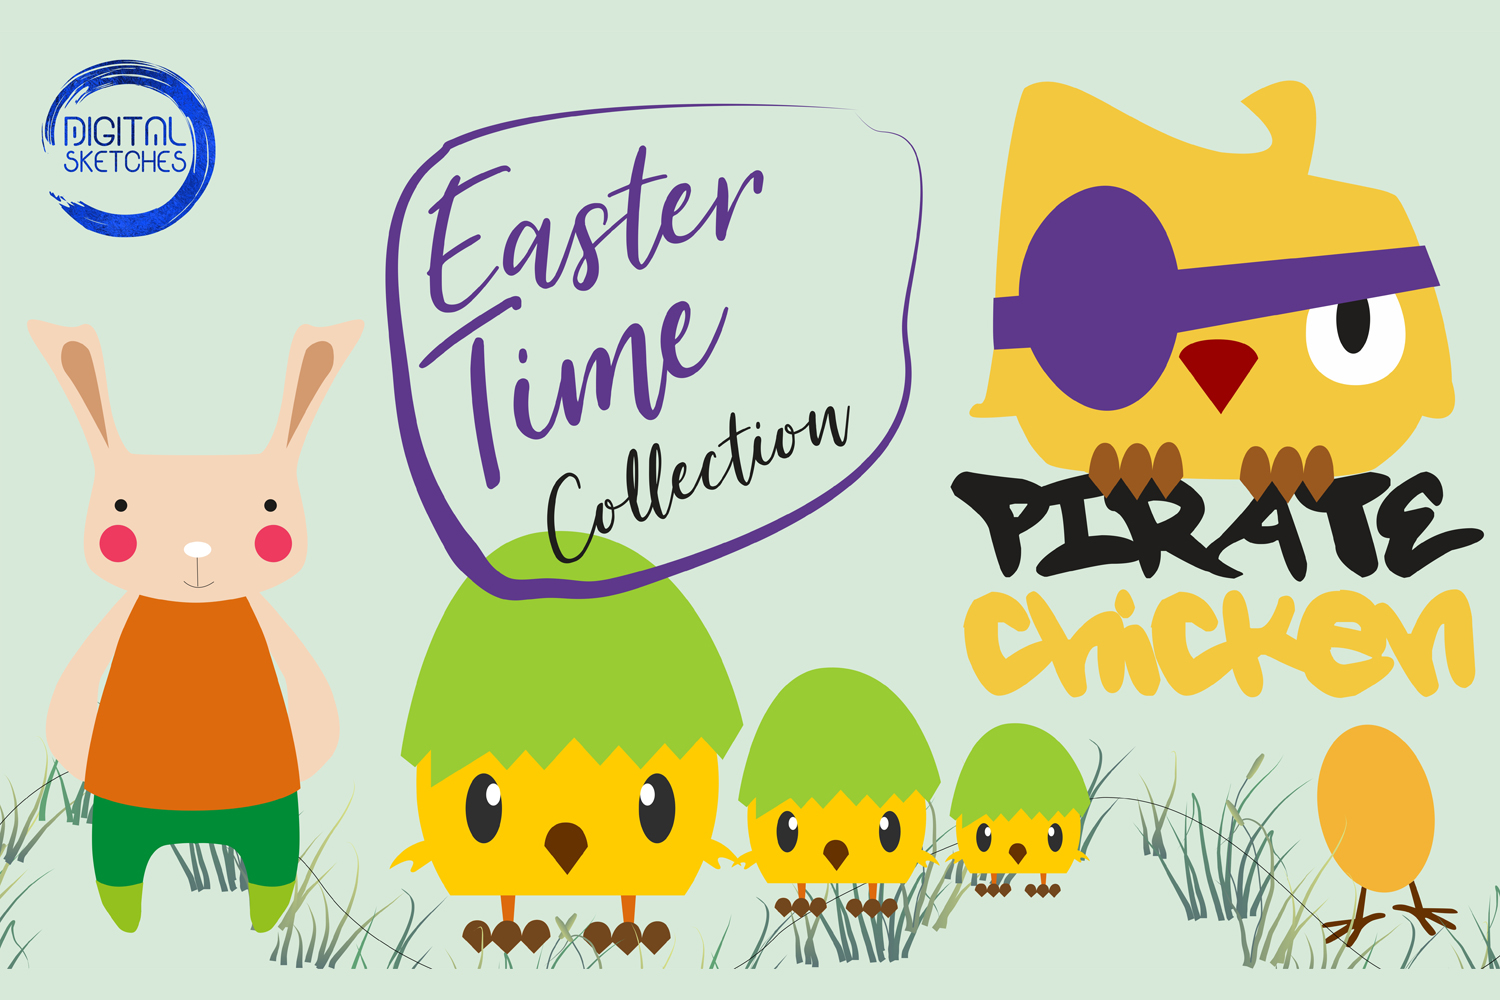 Easter Chicken Chick Cut File Vector Graphics Illustration example image 2